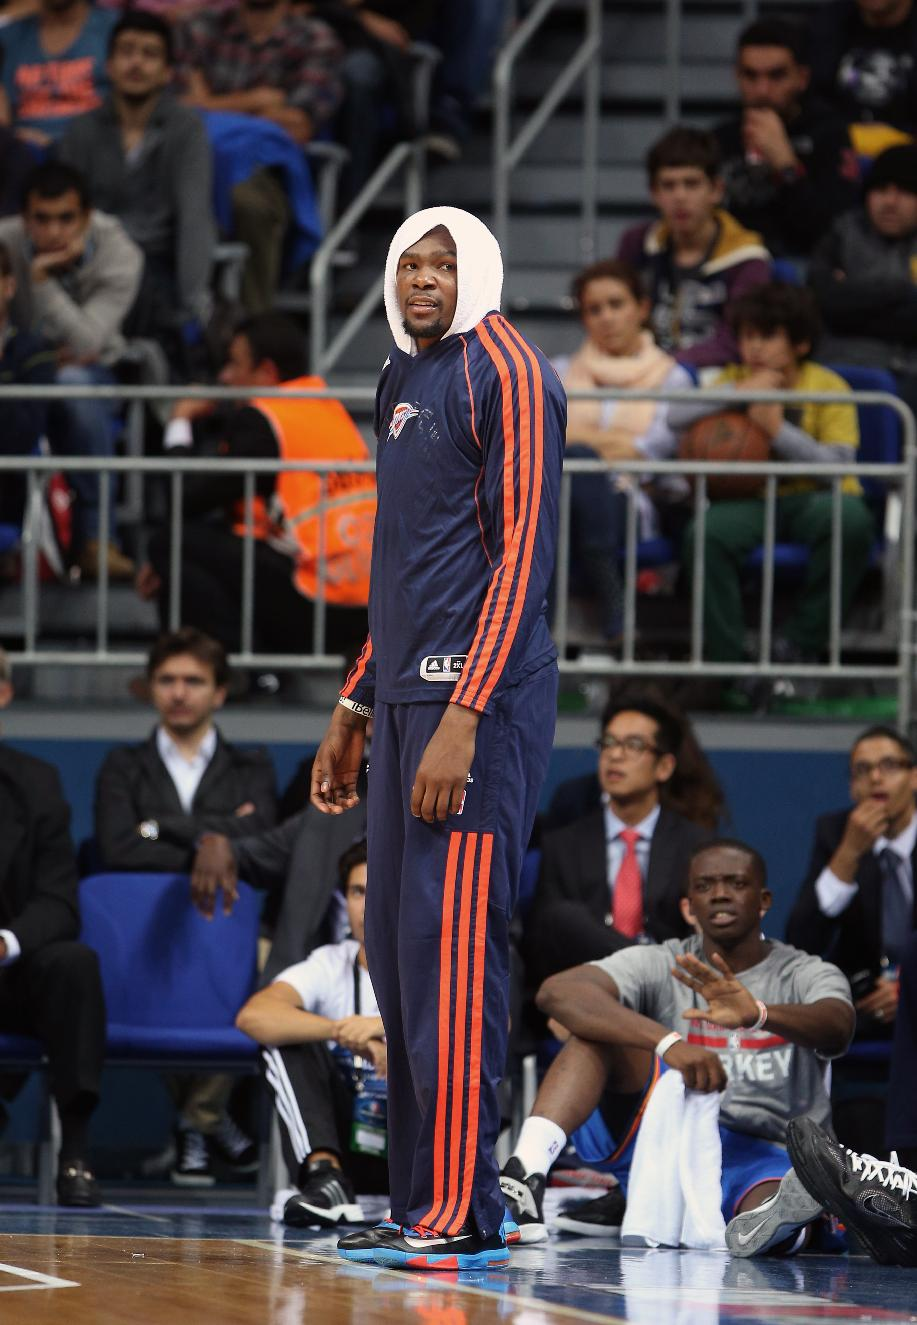 The NBA team Oklahoma City Thunder's Kevin Durant looks on to playing teammates during a preseason basketball game in Istanbul, Turkey, Saturday, Oct. 5, 2-13. Oklahoma City Thunder has opened the preseason schedule with a game against the five-time Turkish champions at the Ulker Sports Arena.(AP Photo)